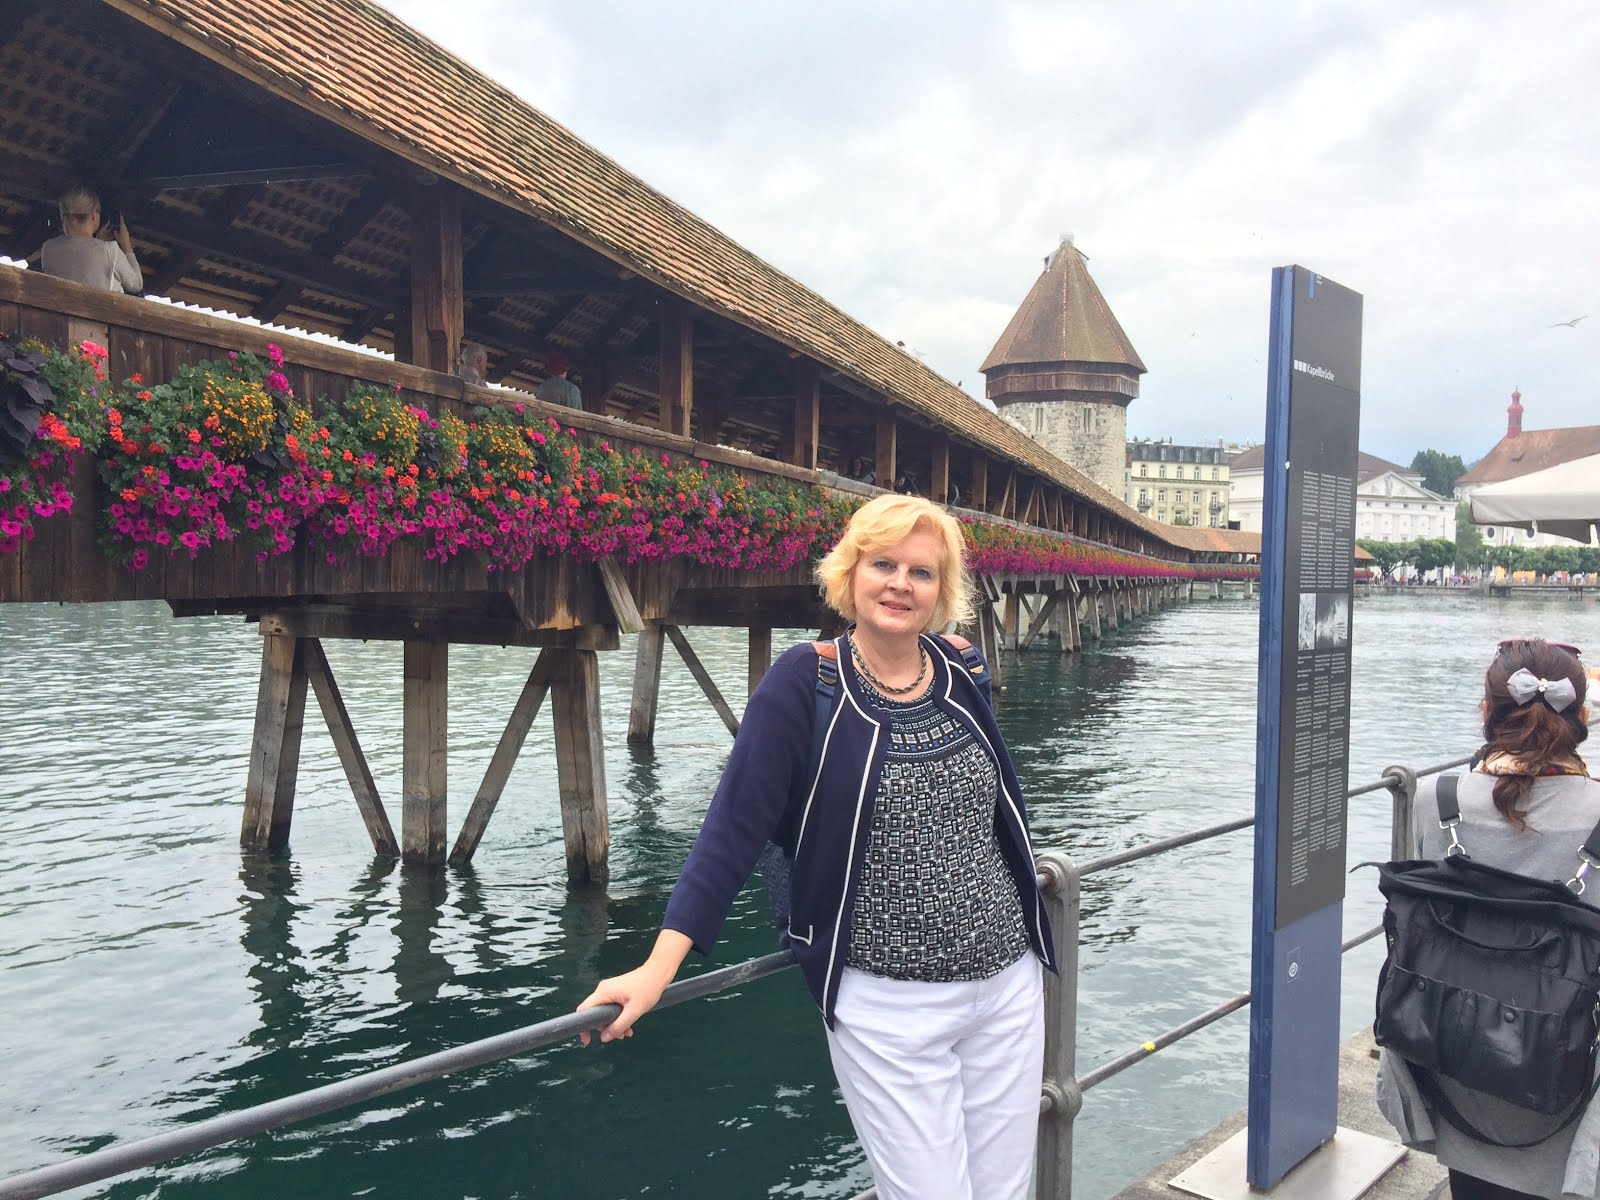 At the Chappel Bridge in Lucerne